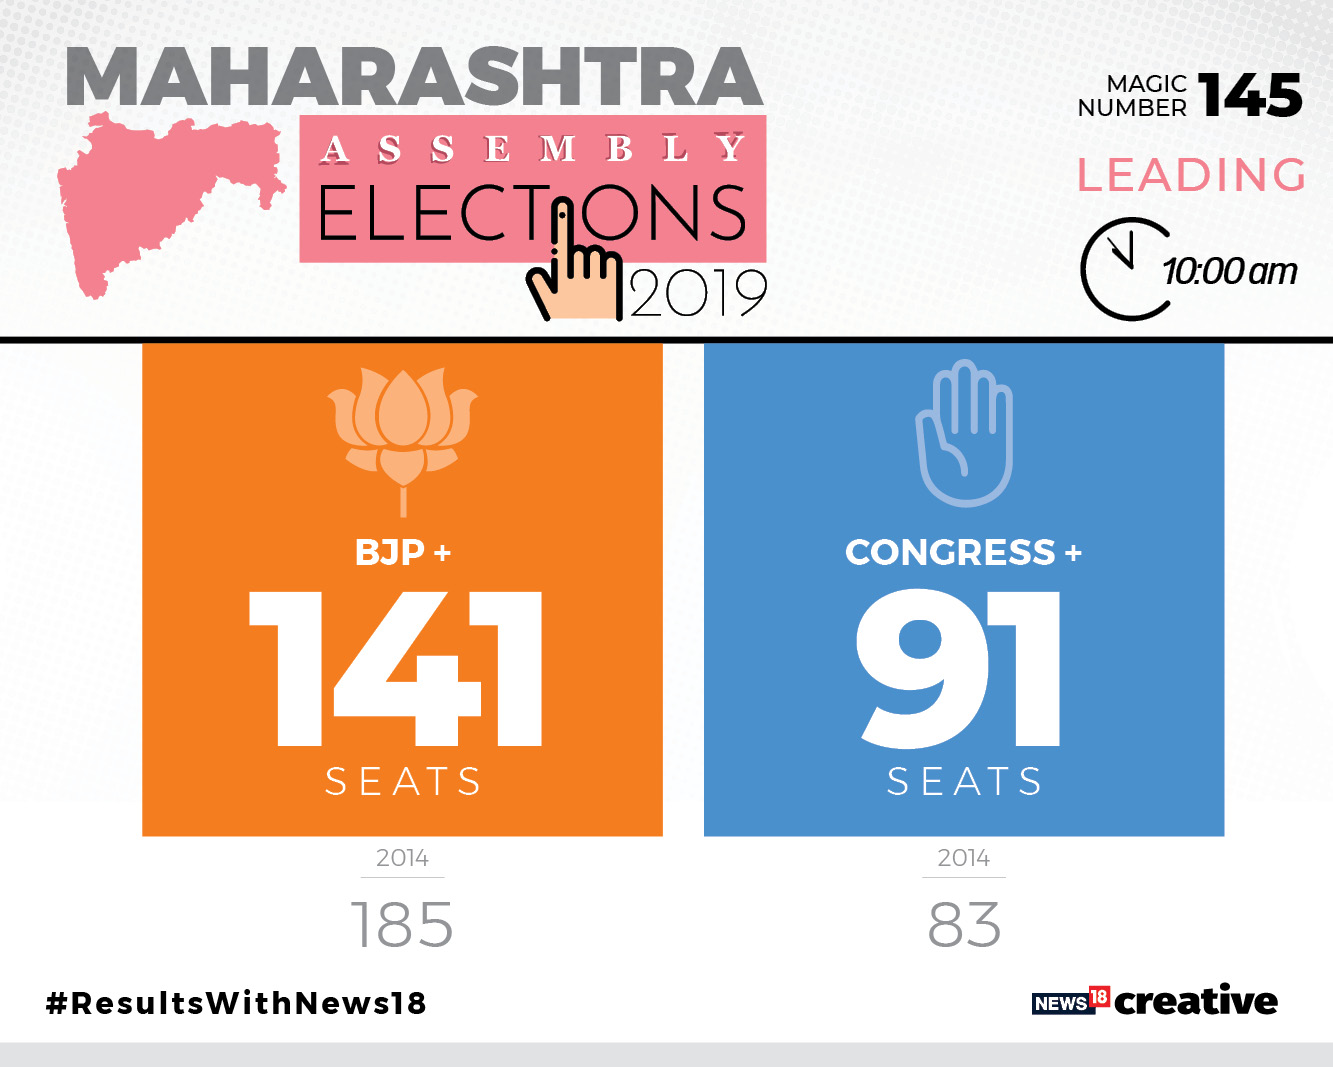 BJP-Shiv Sena ahead in 141 seats; Congress, NCP lead in 91 seats## BJP-Shiv Sena ahead in 141 seats; Congress, NCP lead in 91 seats  